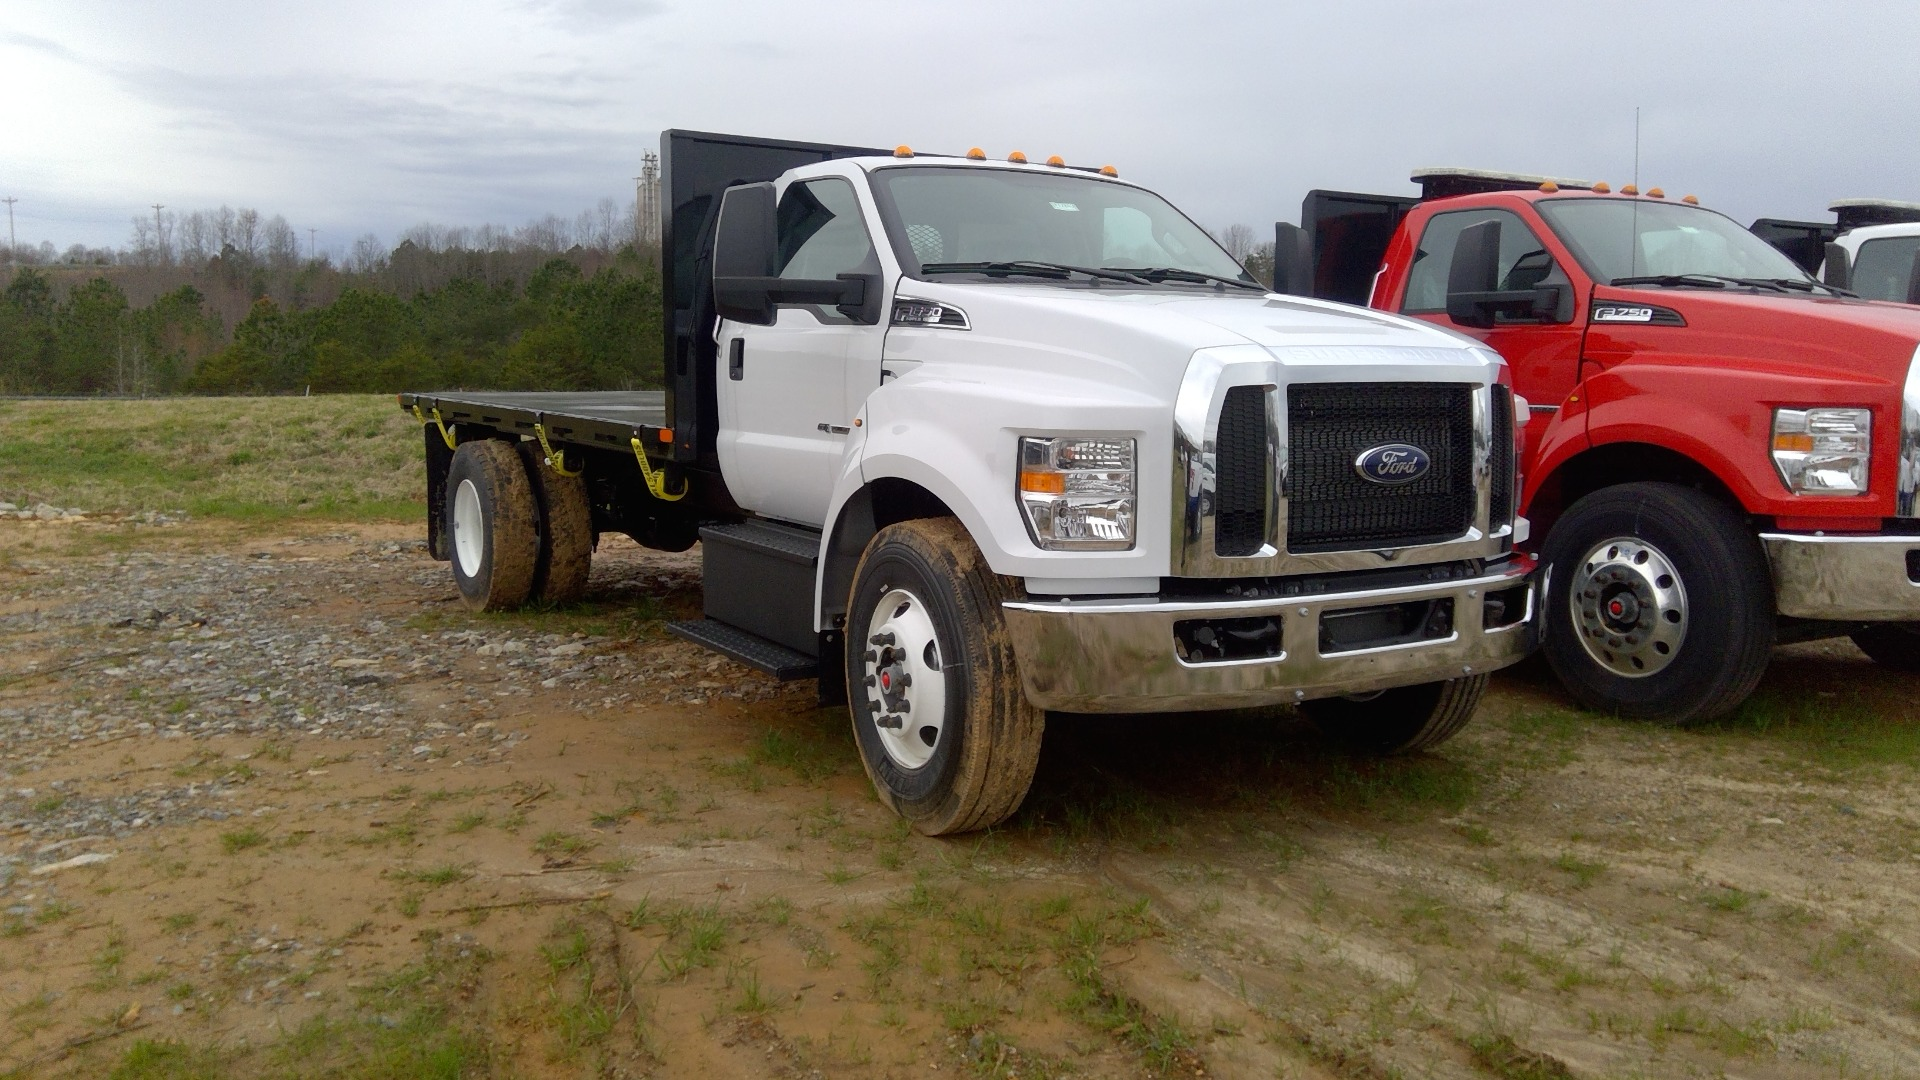 2019 Ford F-650 Regular Cab DRW 4x2, PJ Truck Beds Platform Body #FT10299A - photo 1